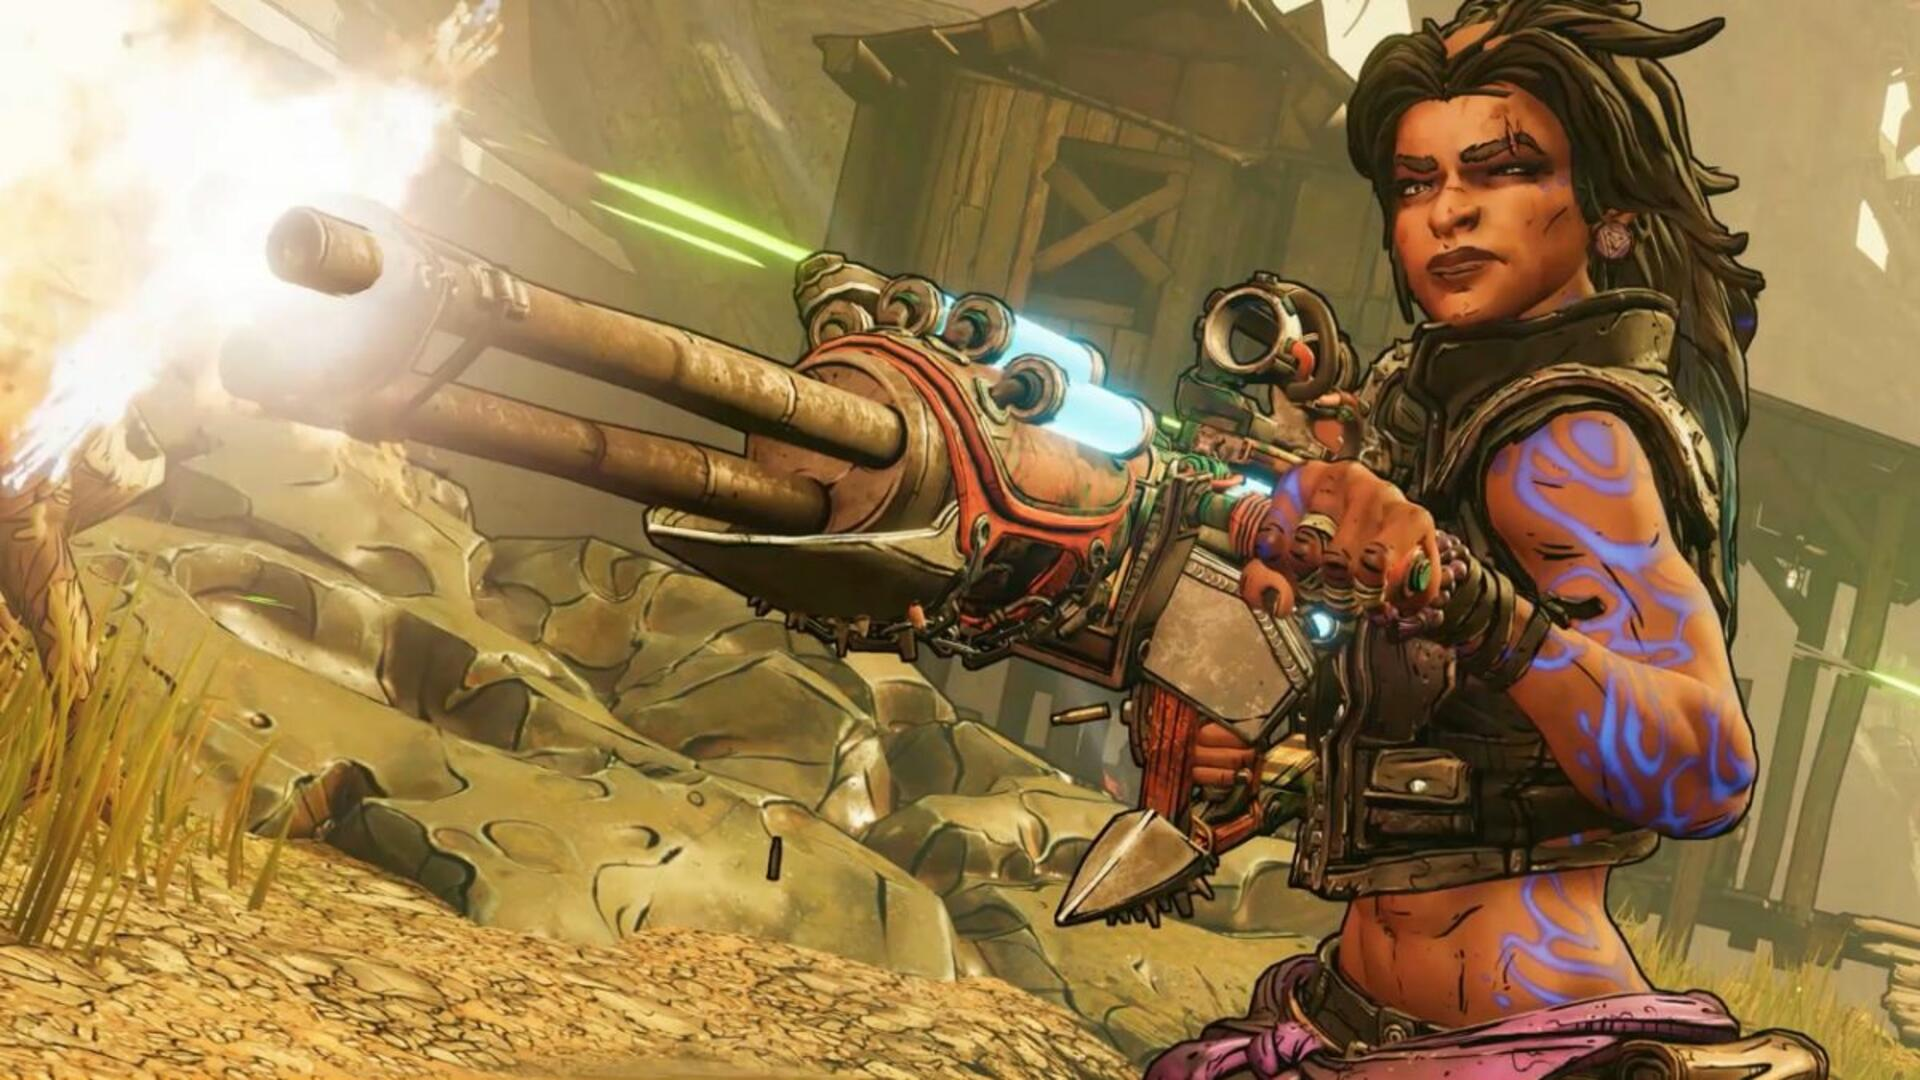 Watch Us Shoot So Many Bad Guys in Our 22 Minutes of Borderlands 3 Gameplay Footage